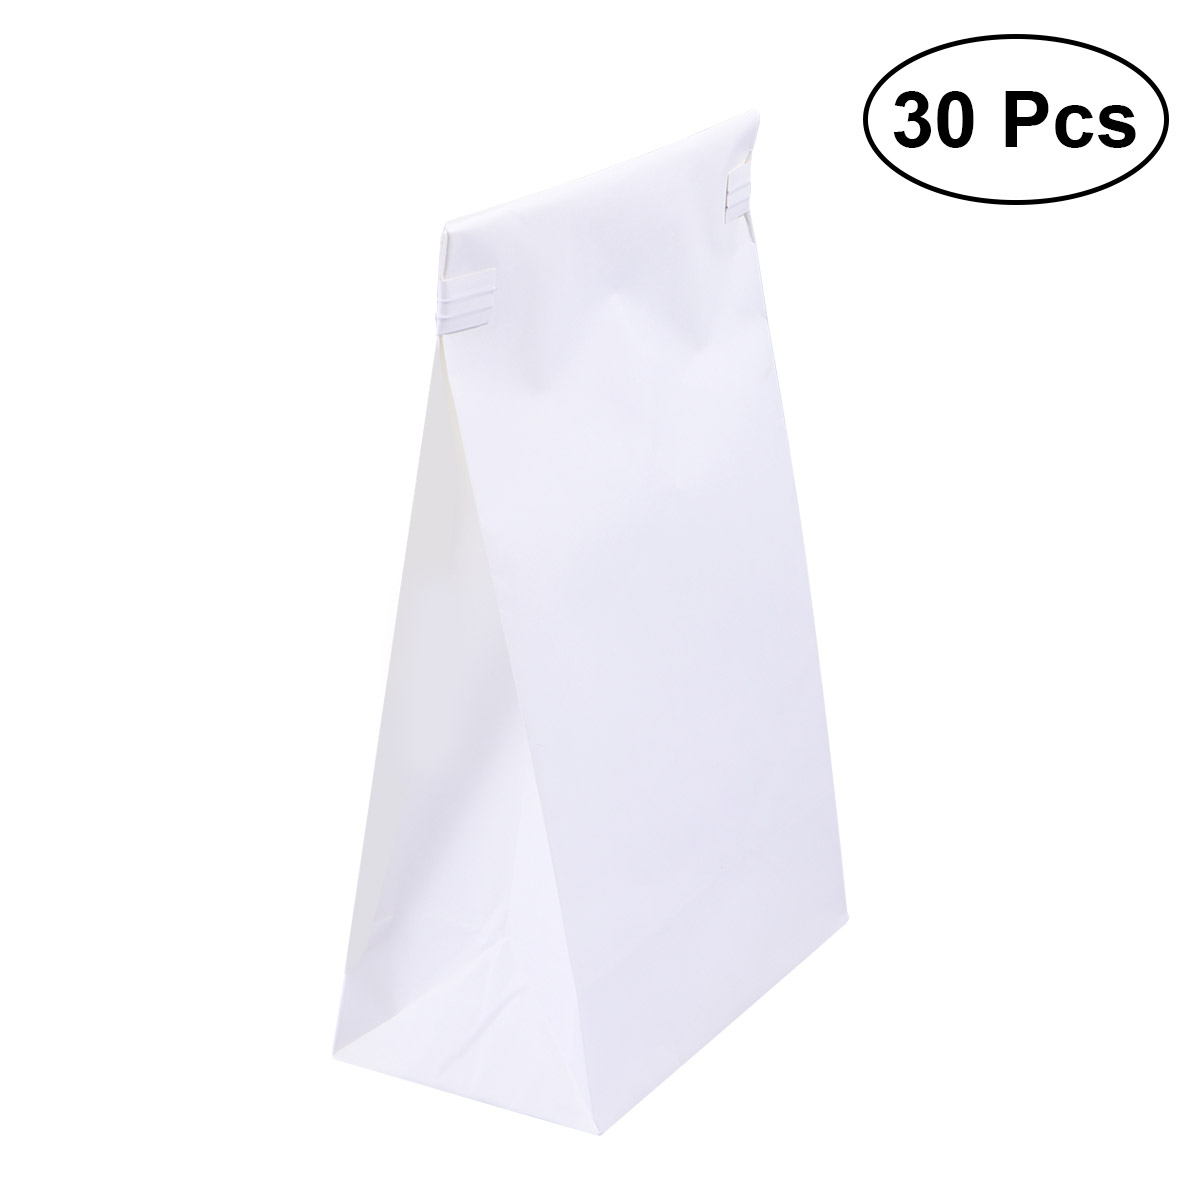 Disposable Lightweight Durable Barf Bags Motion Sickness Travel Portable Vomit Bags For Drunks Pregnant Women Children